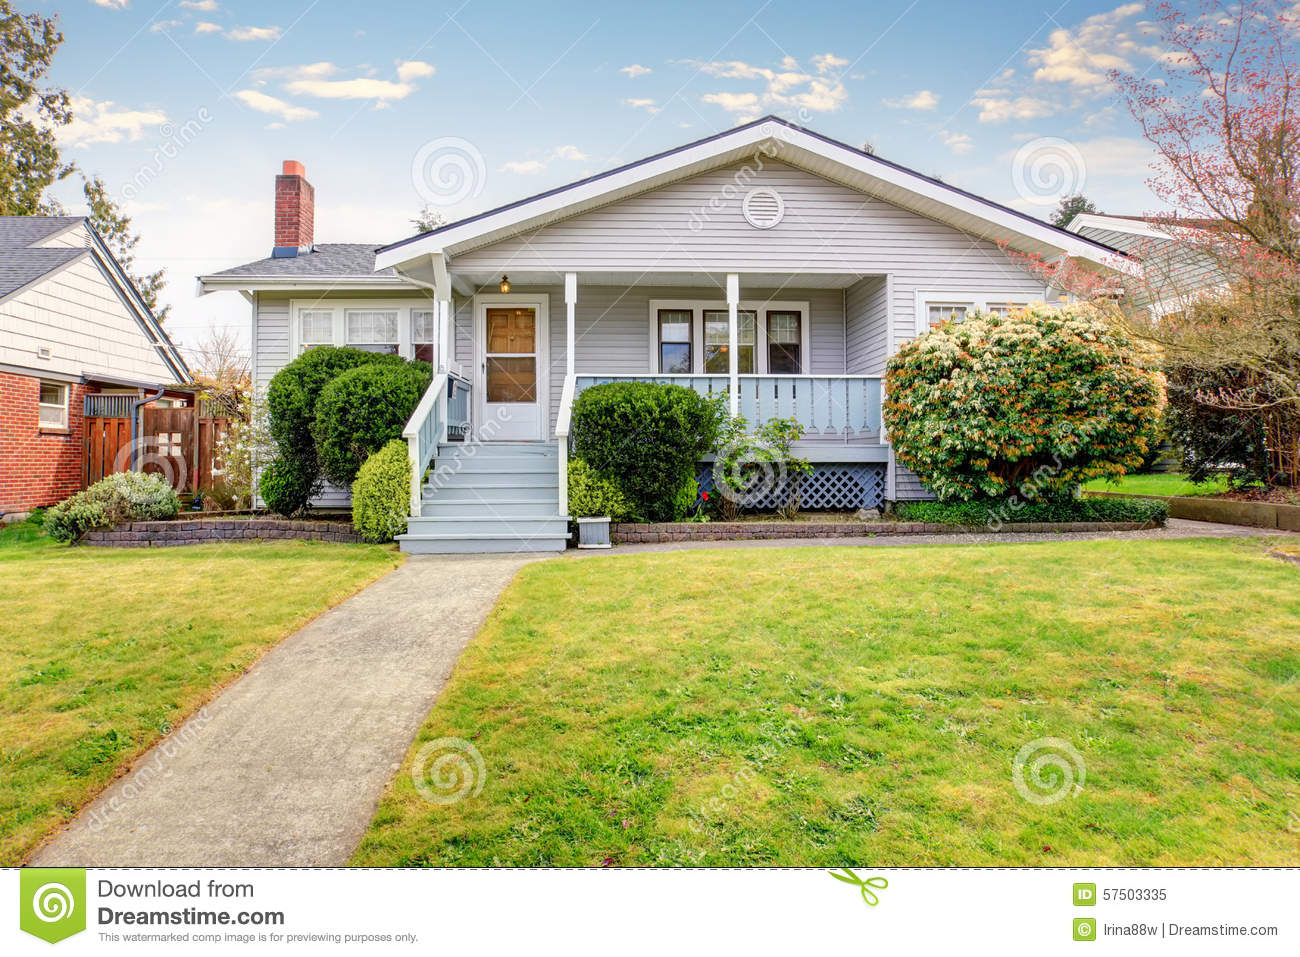 porch house outside design html with Small American Home Light Exterior Large Grass Filled Lawn on Wooden Lawn Chair Designs likewise Choose The Best Color For Your Front Door 2 furthermore Coastal Farmhouse Exterior further Modern Homes Designs Exterior Small likewise Nautical Porch Decor.